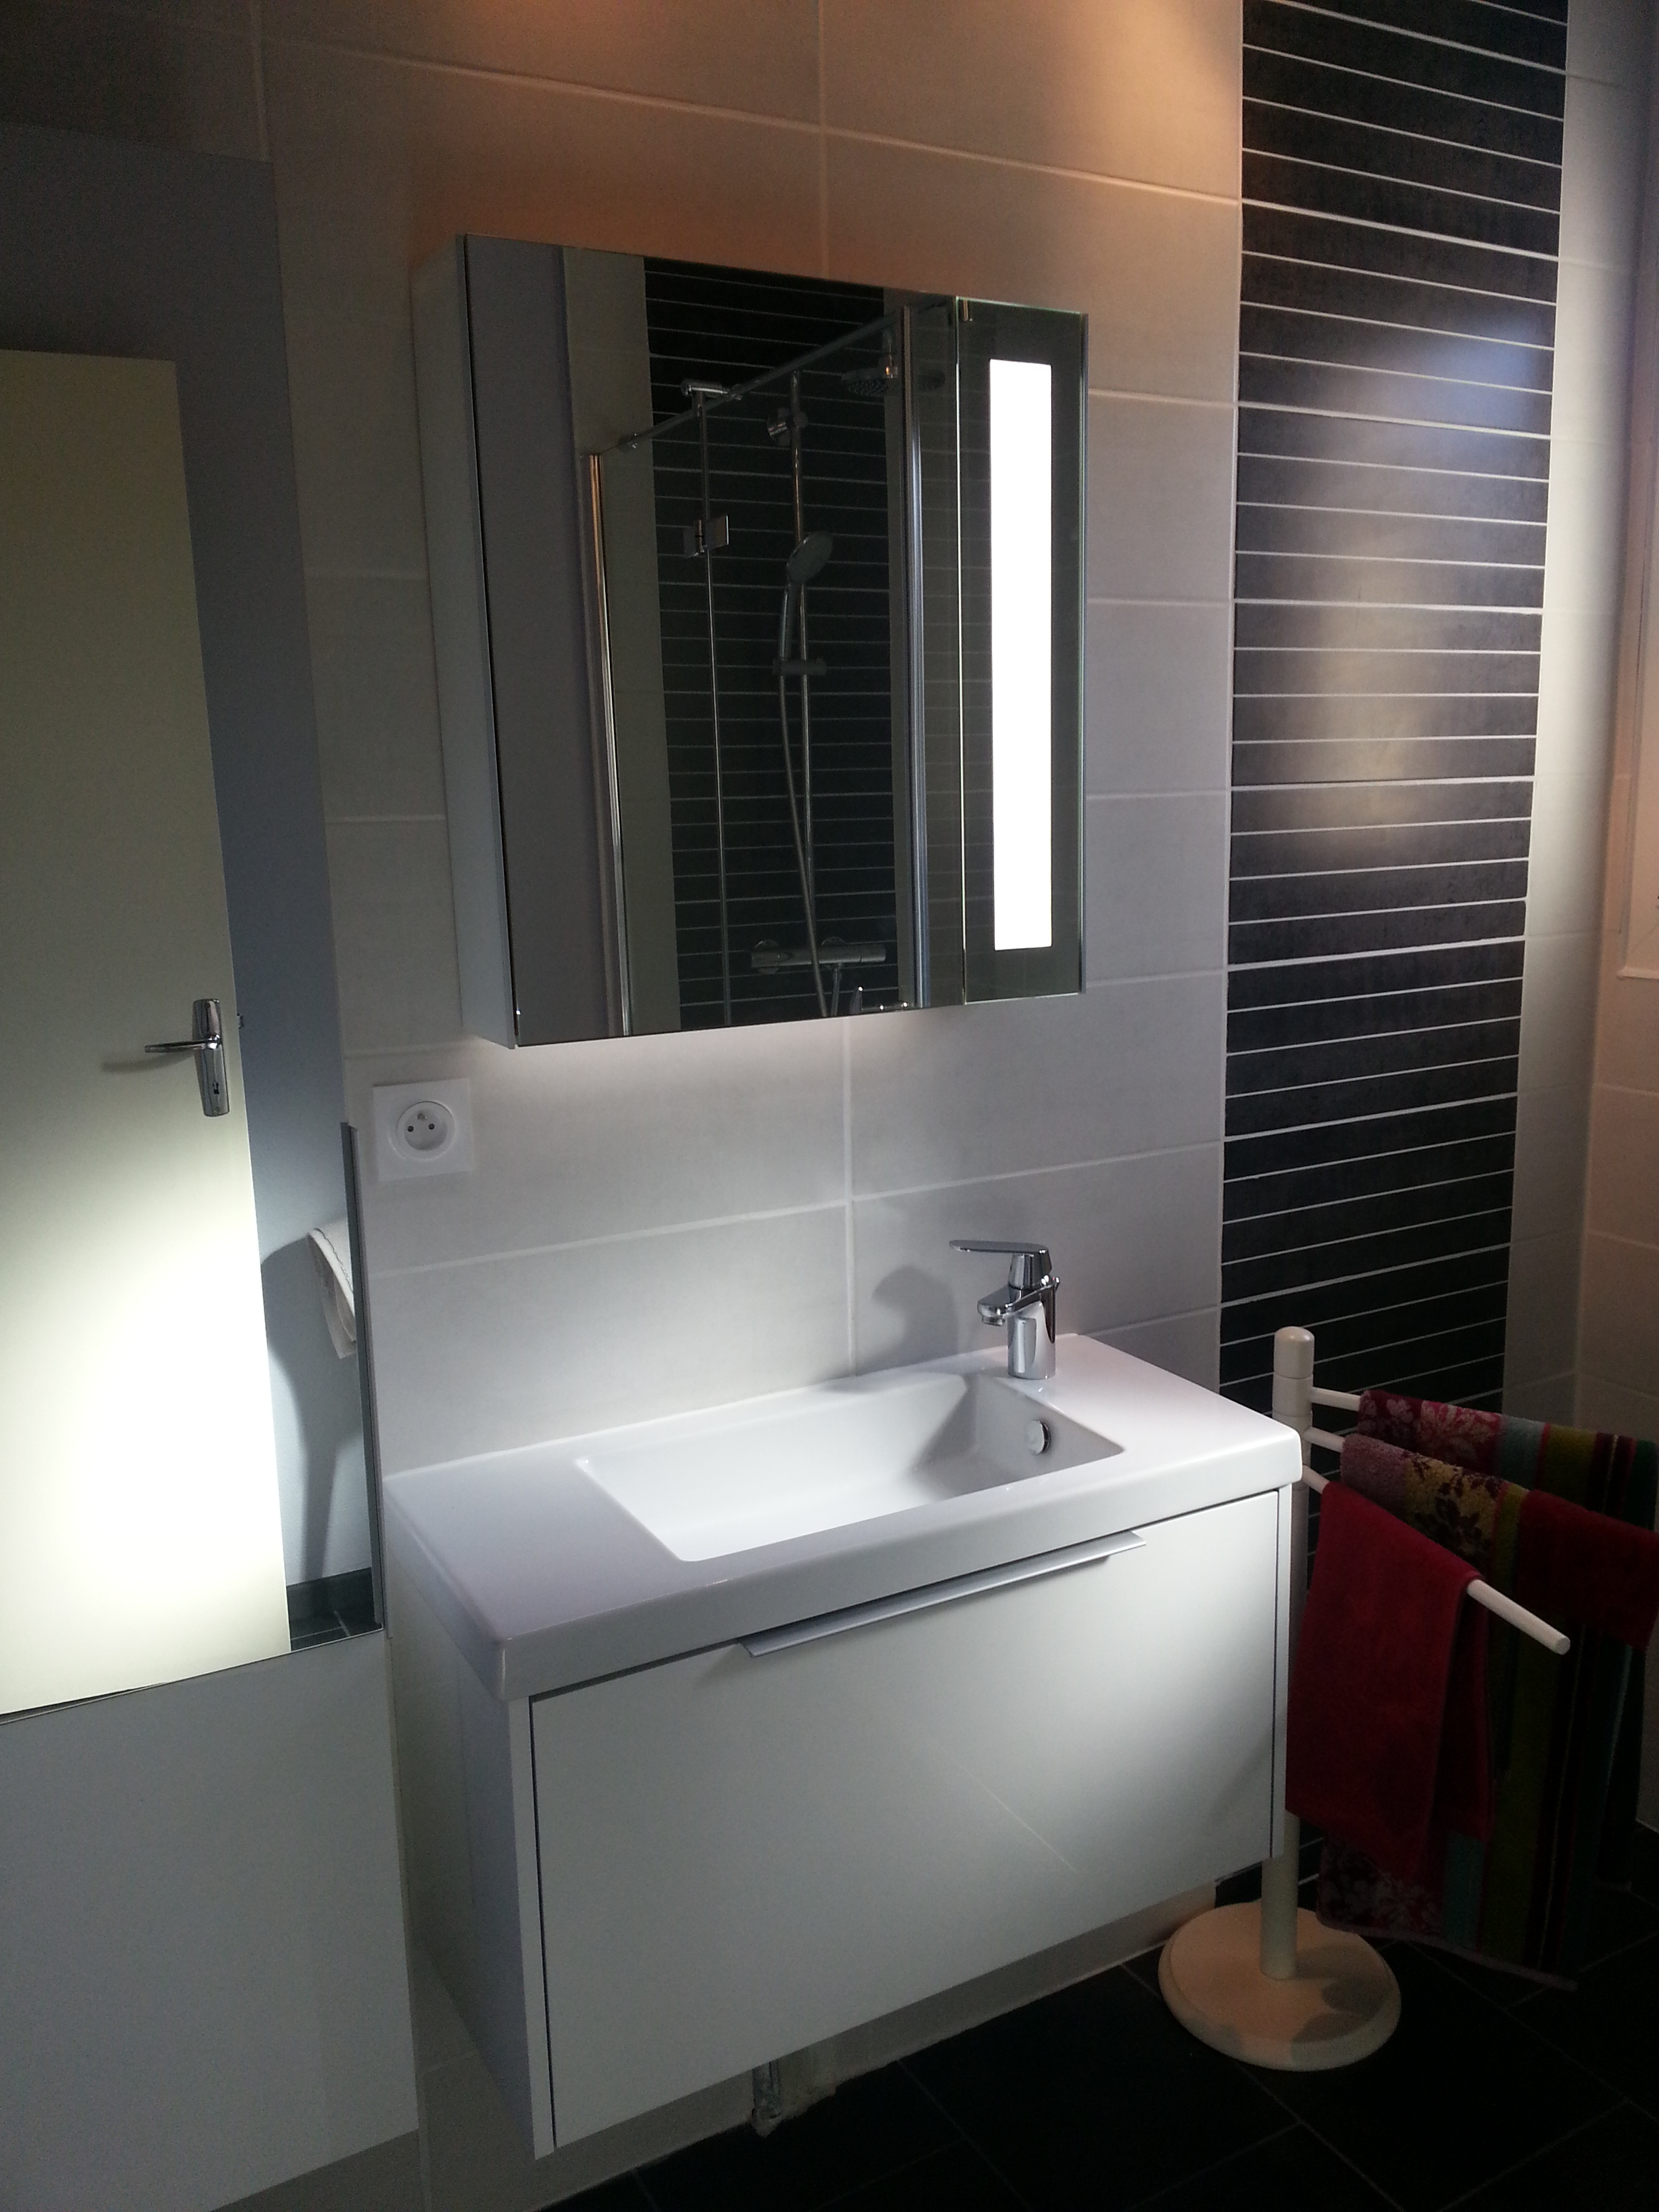 refection salle de bain pose d une douche de 120 90 at toph services. Black Bedroom Furniture Sets. Home Design Ideas